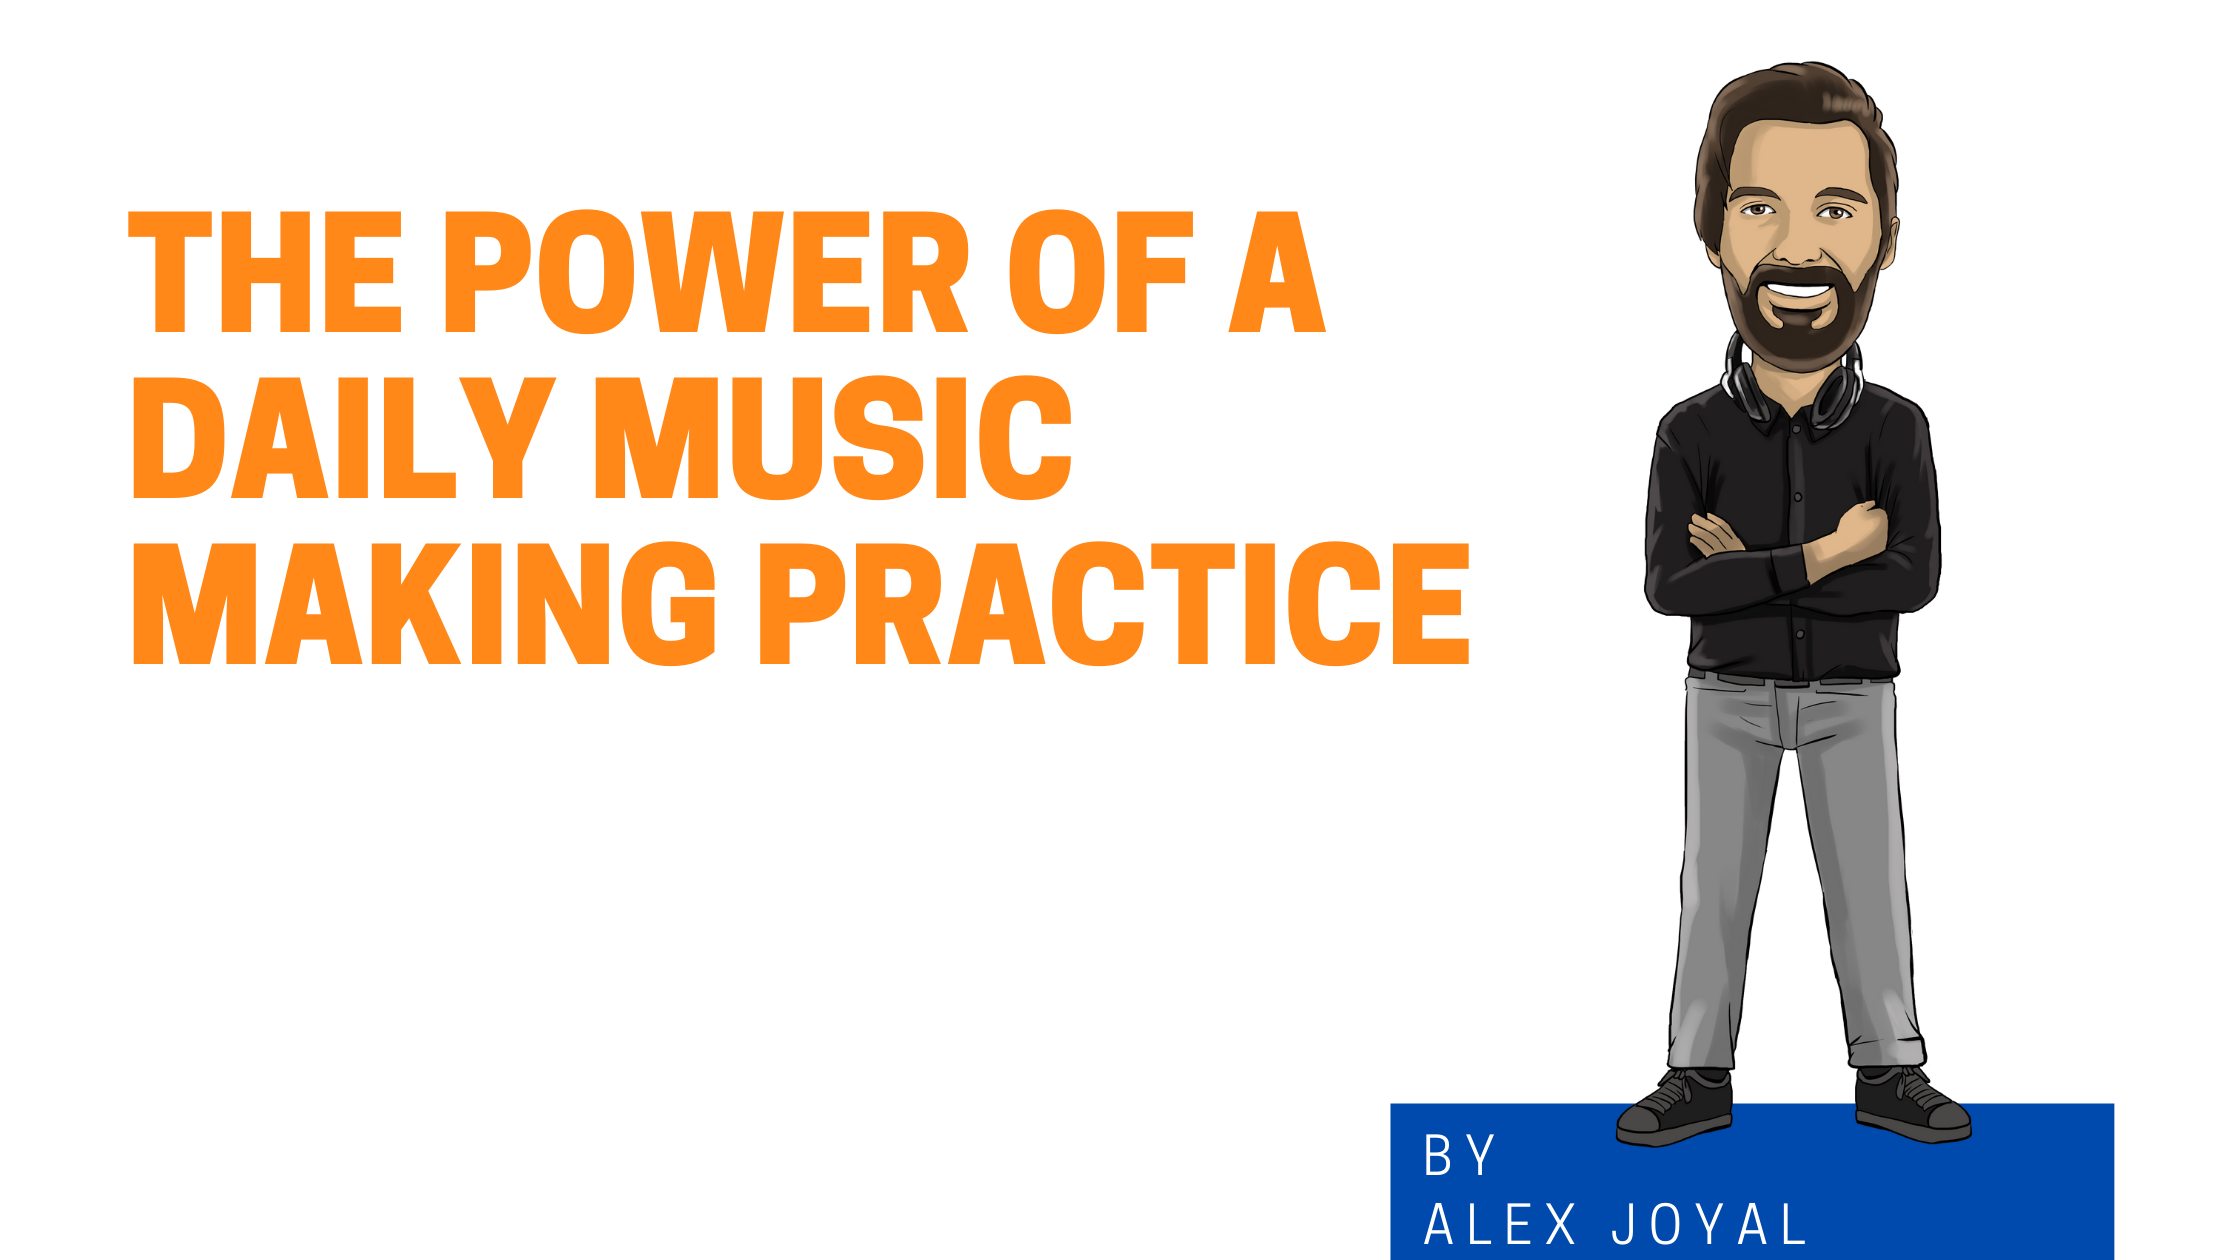 The Power Of A Daily Music Making Practice Image Graphic with cartoon